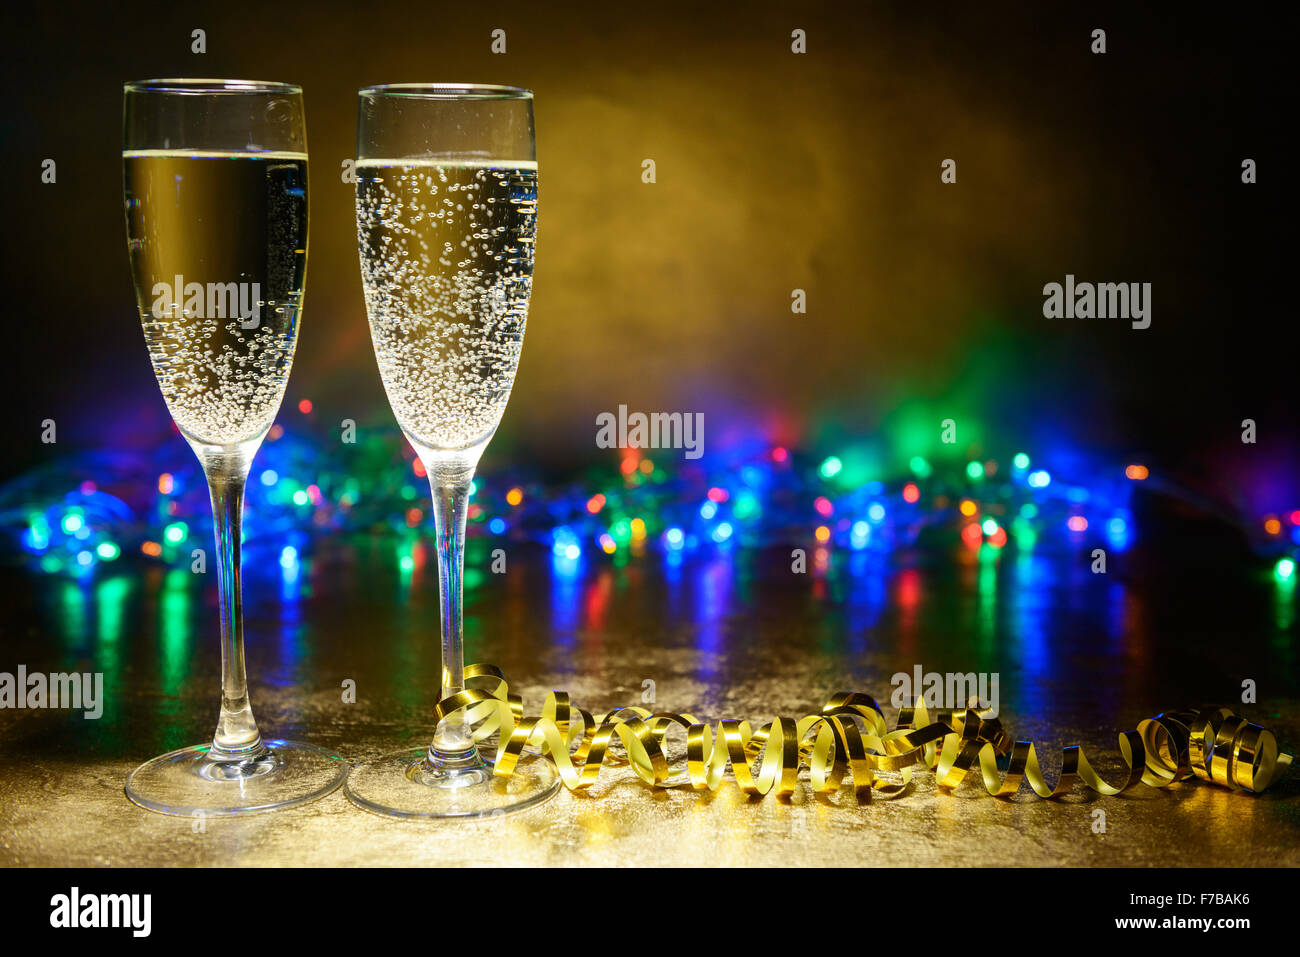 two glasses of champagne on a bright background with garlands Stock Photo